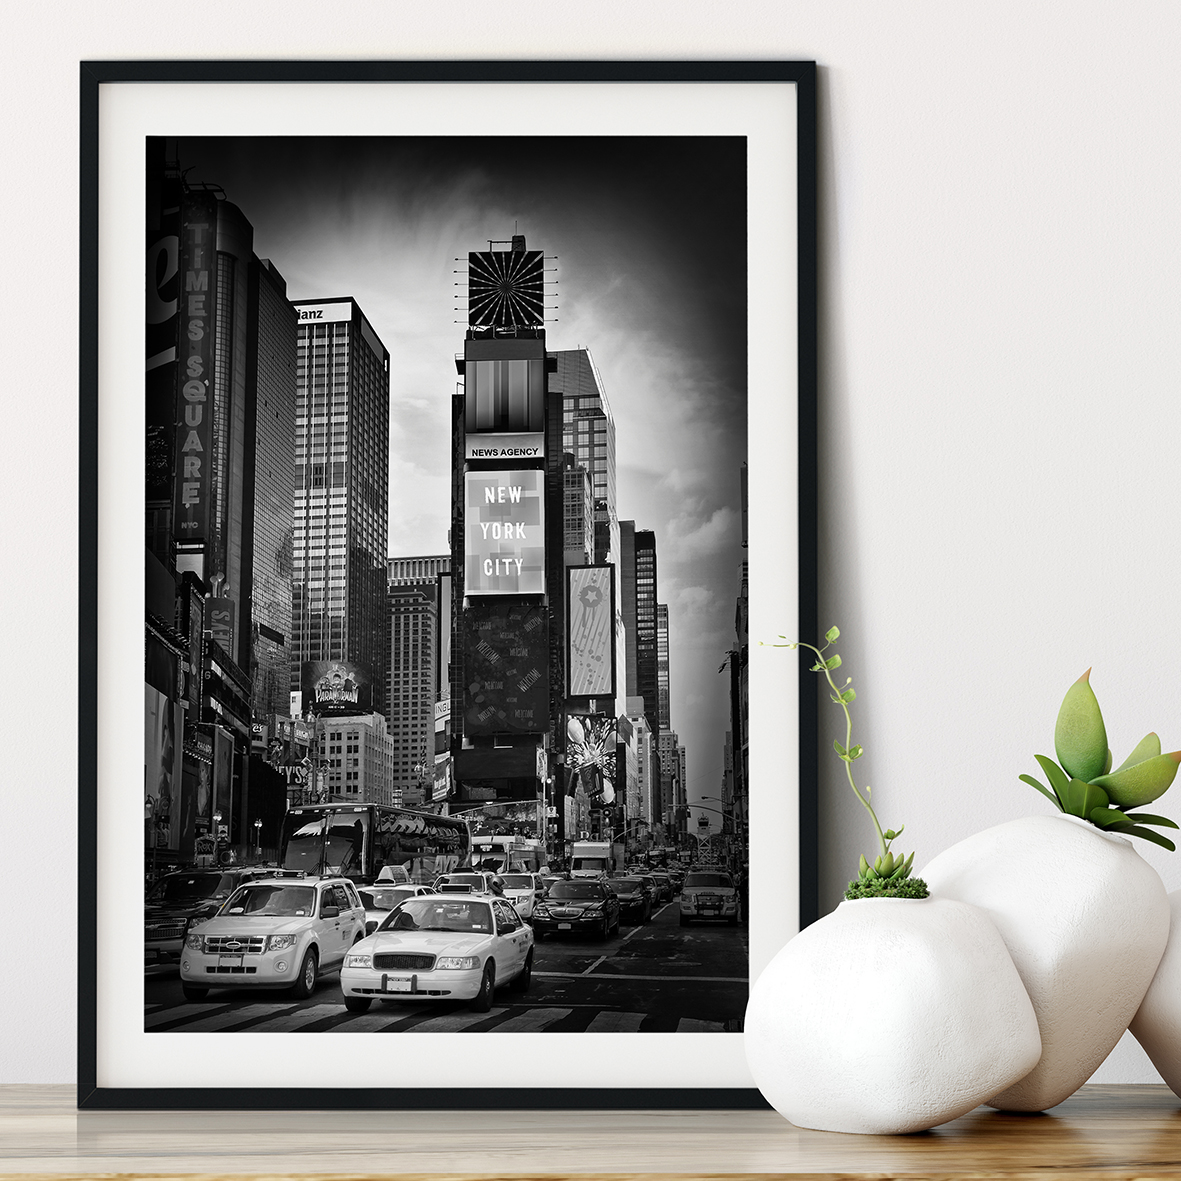 NEW YORK CITY Times Square | Monochrom - Gerahmtes Poster - LINK - artboxONE Onlineshop